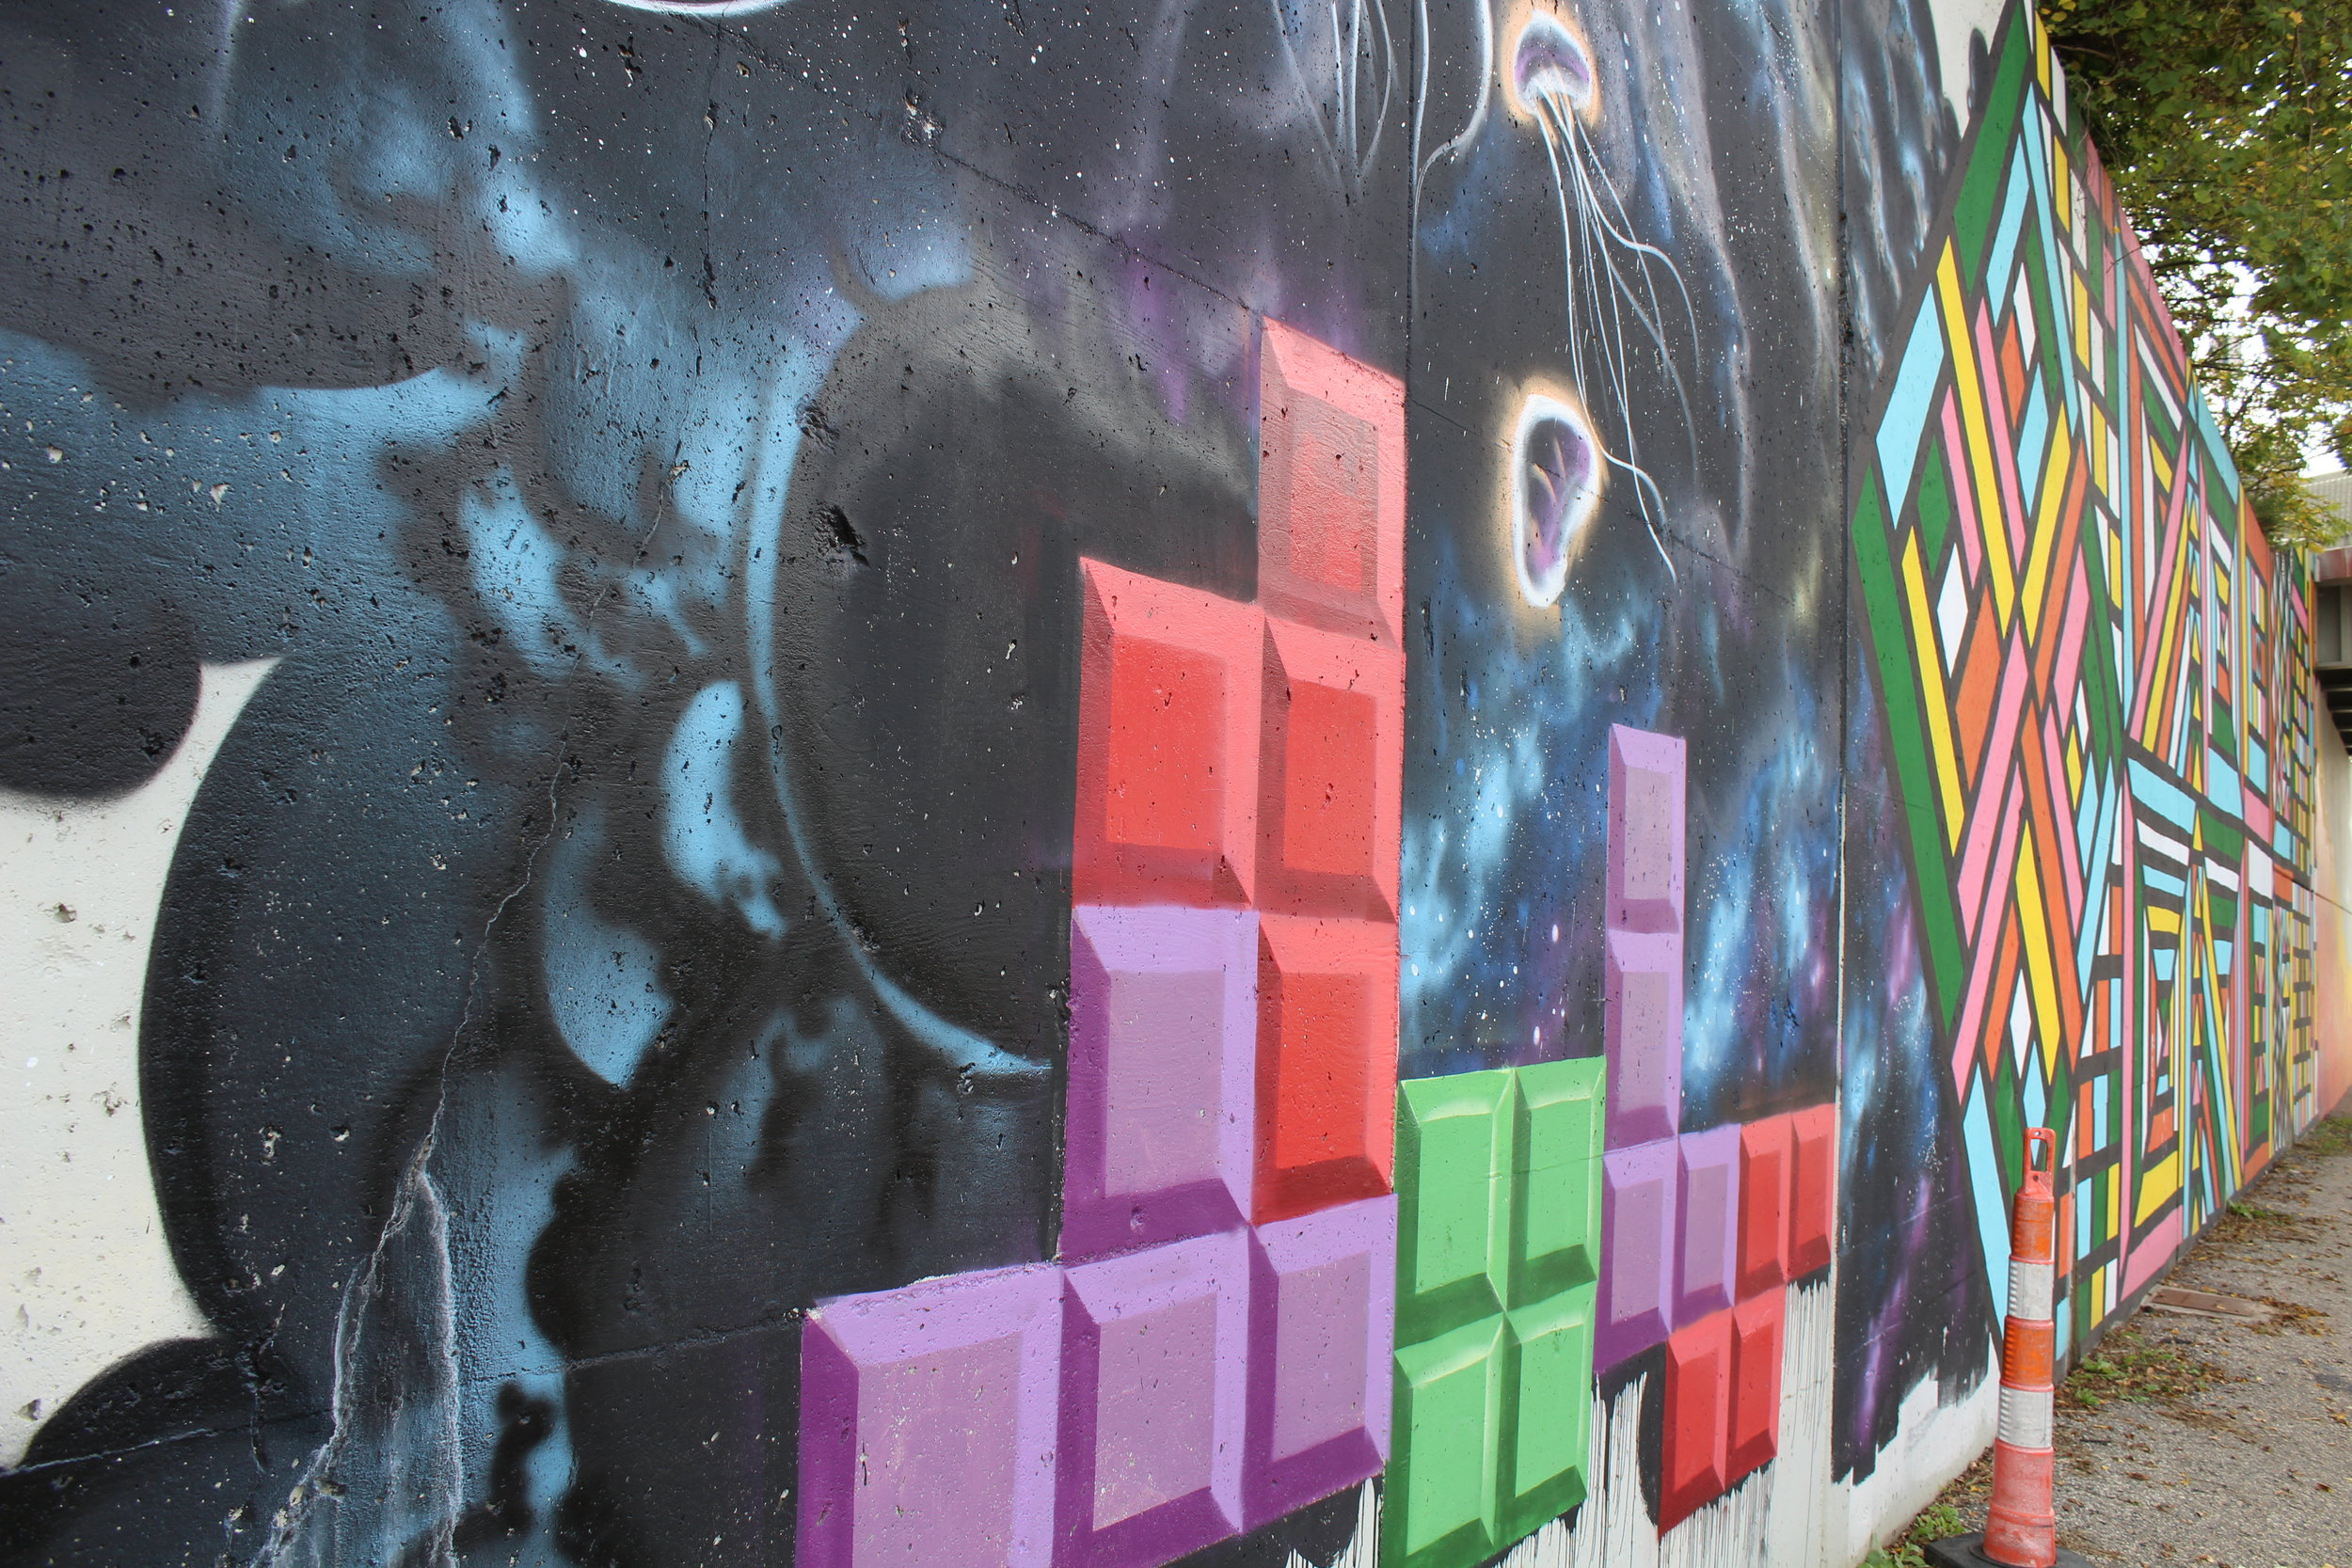 Tetris detail of mural on retaining wall of I-196